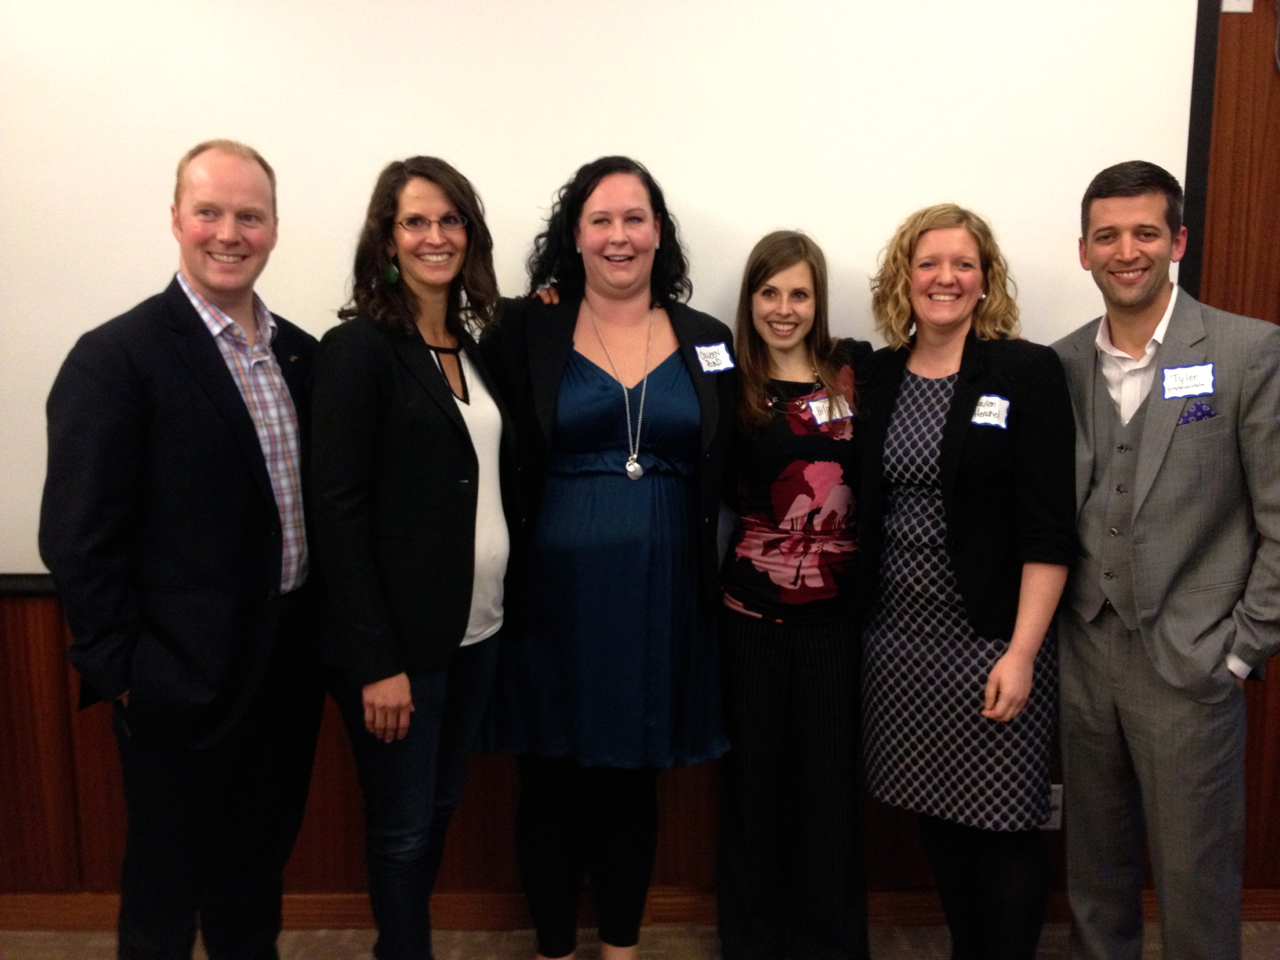 """We were very lucky to have the following members of Avenue Magazine's """"Top 40 Under 40"""" at Steps to Success. From left to right, Stewart McDonough, Shauna MacDonald, Colleen Pound, Hilary Johnson (CPRS volunteer/event organizer), Lauren Herschel and Tyler Chisholm"""